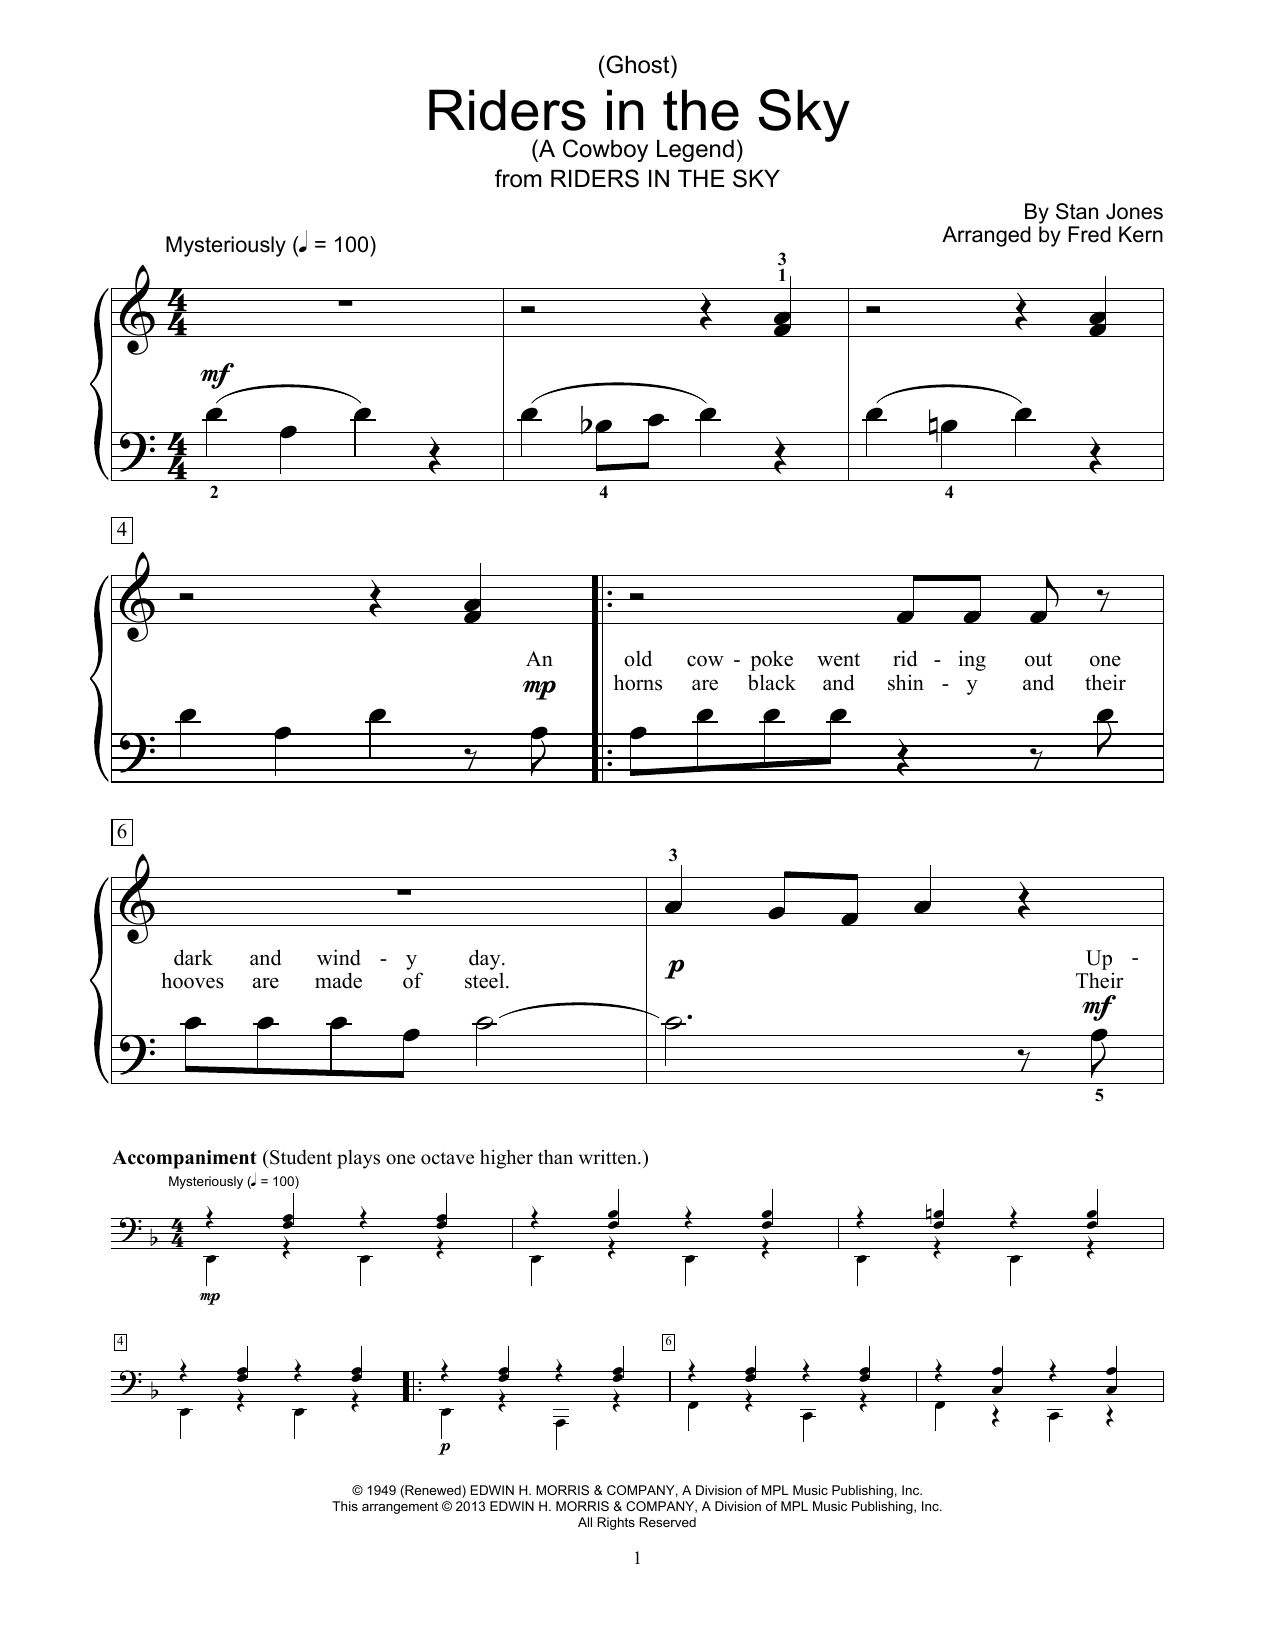 (Ghost) Riders In The Sky (A Cowboy Legend) Sheet Music